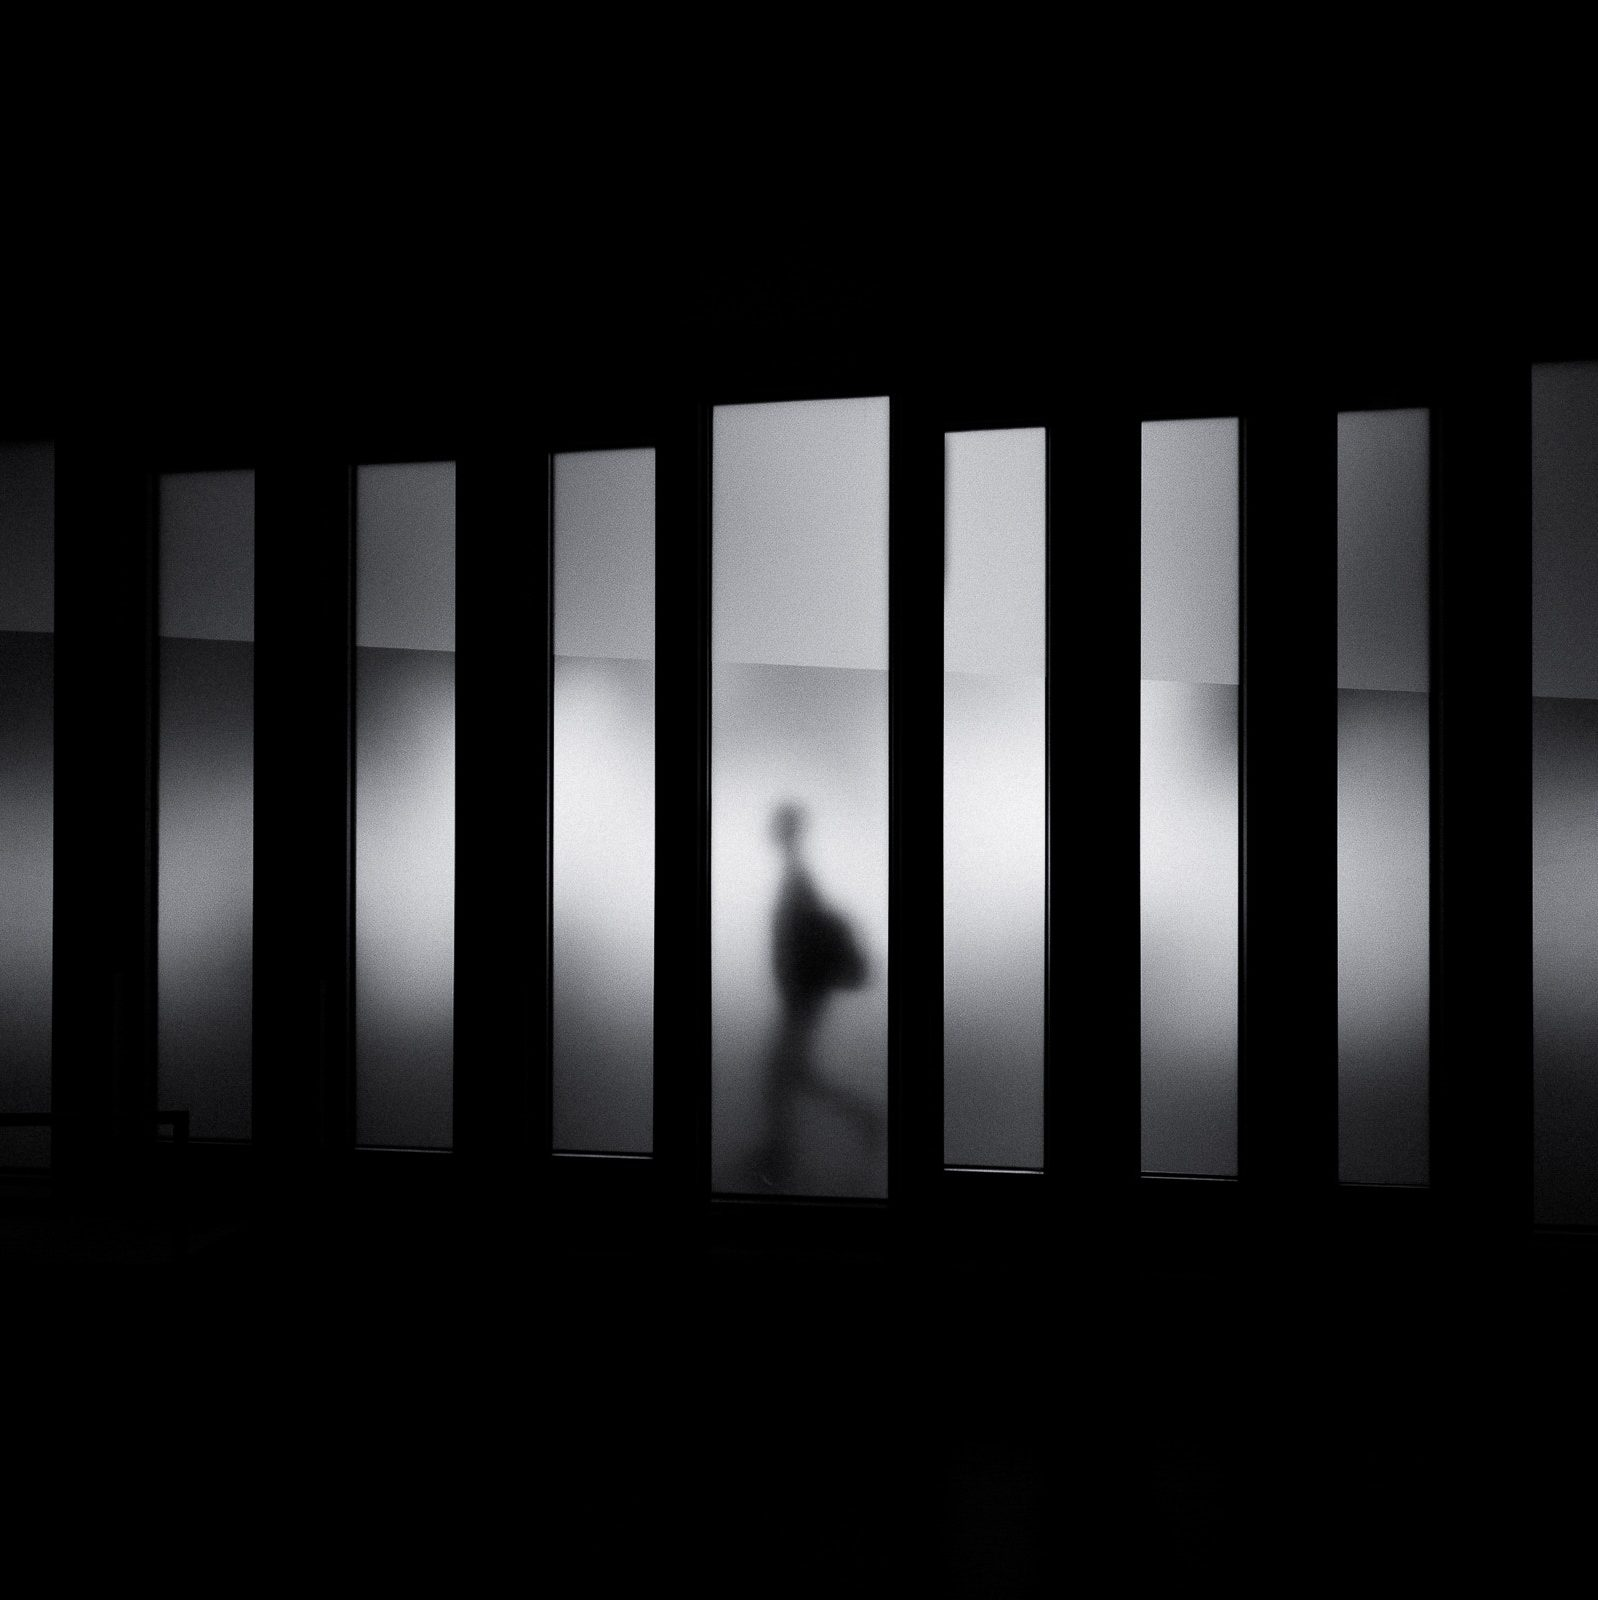 A shadowy window with a dancer behind it. This image is in black and white